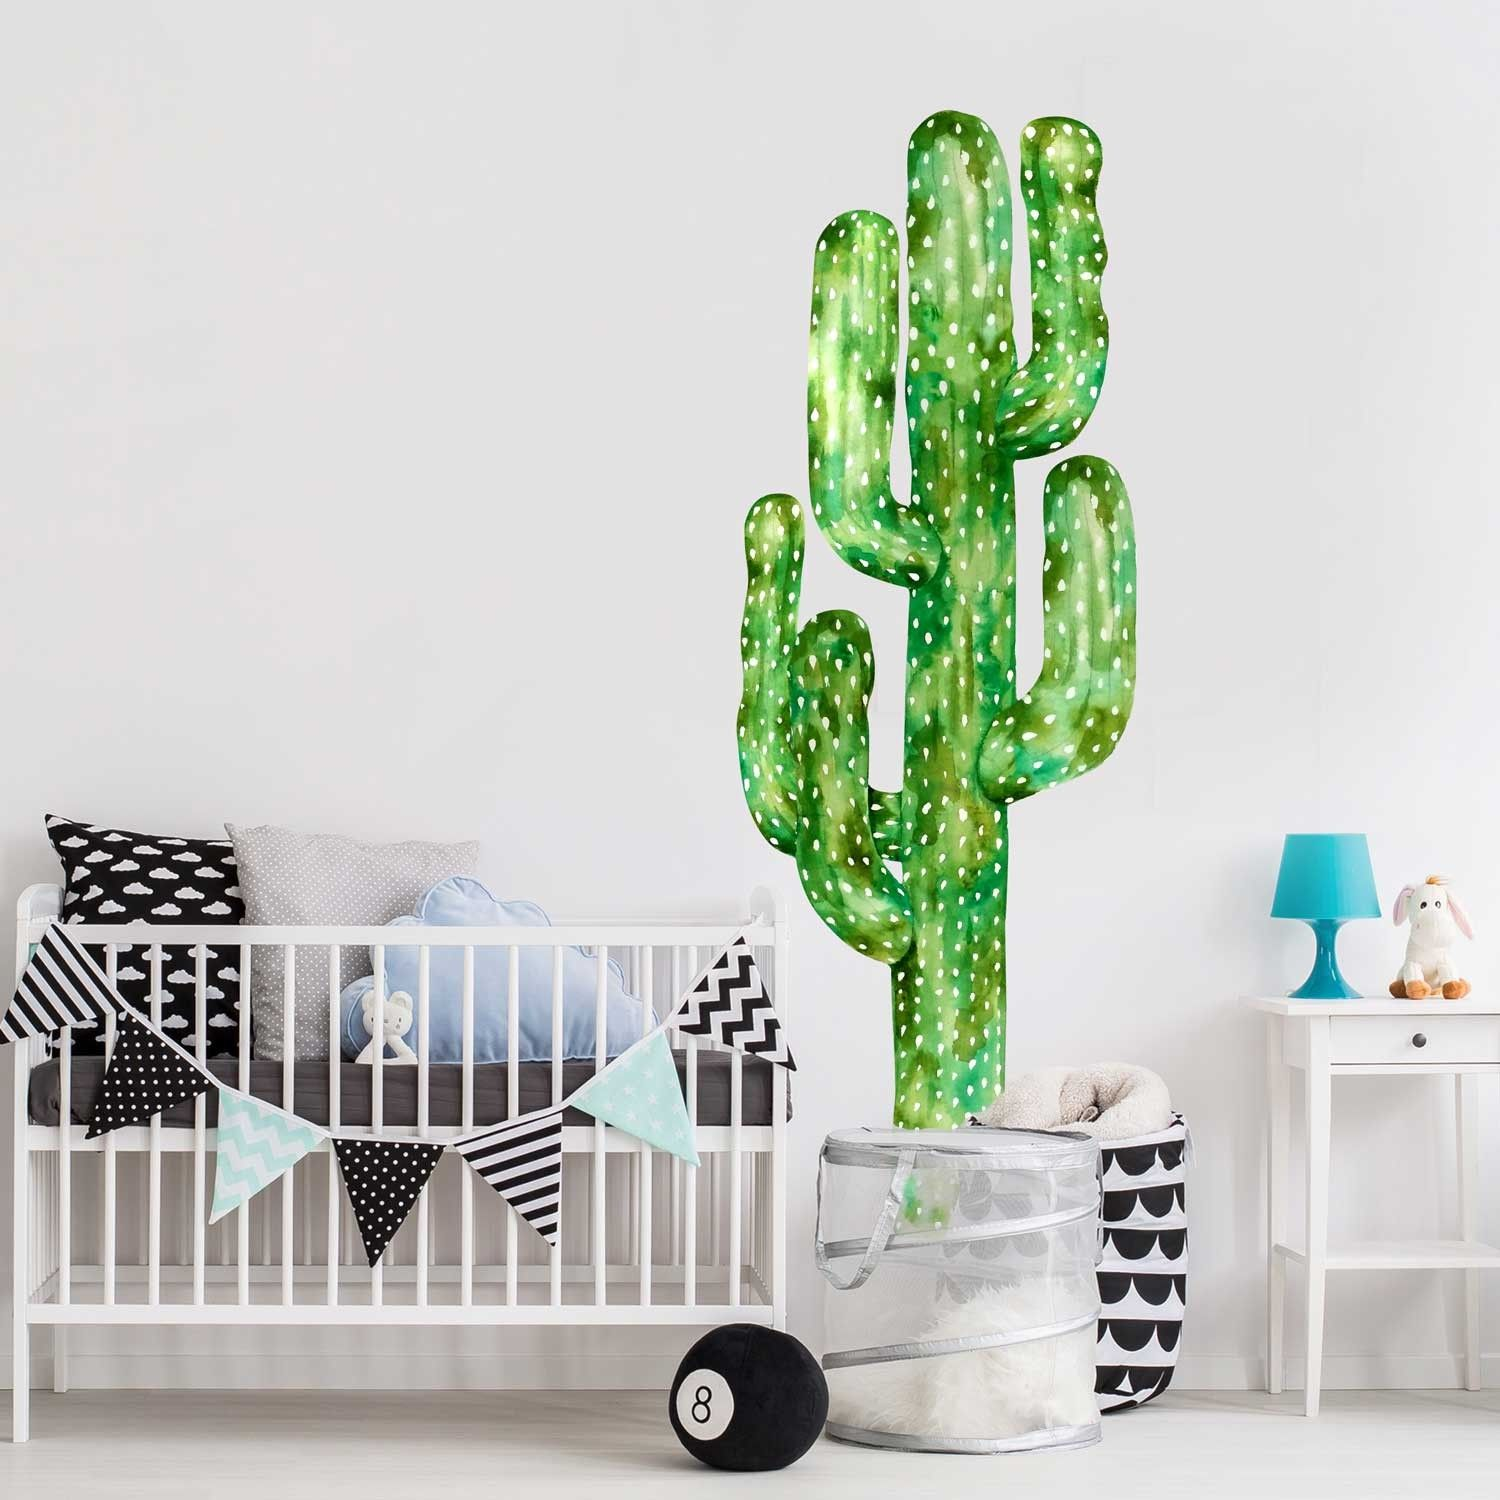 Saguaro Cactus Watercolor Wall Decal without Flowers Room by Chromantics 46cc07567b84e